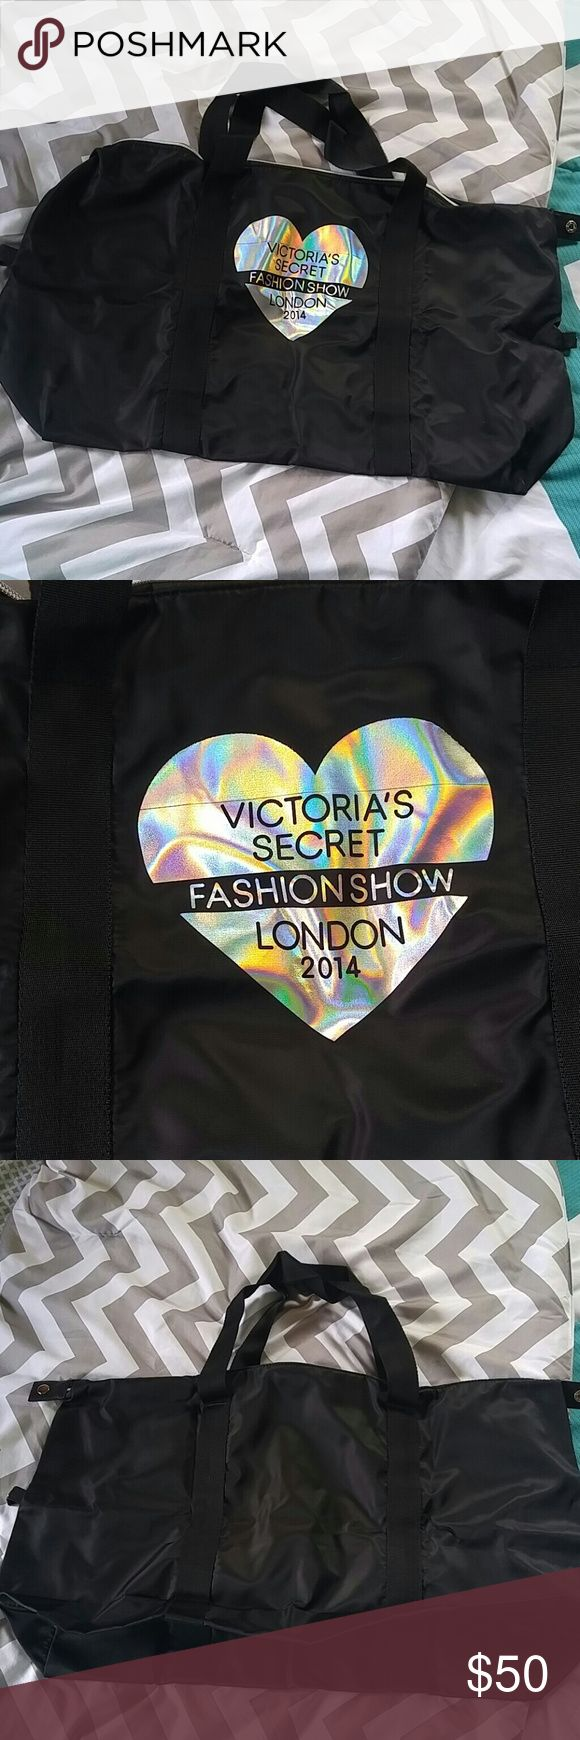 Black Victoria's Secret Fashion Show London 2014 💟💋Black satin Victoria's Secret Fashion Show London 2014 bag has a bag inside of a clutch bag the zipper closure has wings hologram heart that says her choice Secret Fashion Show London 2014. The bag is a large duffel bag that zips all so you could snap the small bag you carry the large bag in on the outside. This is never been used has been left in the plastic Store app. NWOT firm on price no sales no trades watch for Flash sales or add to…